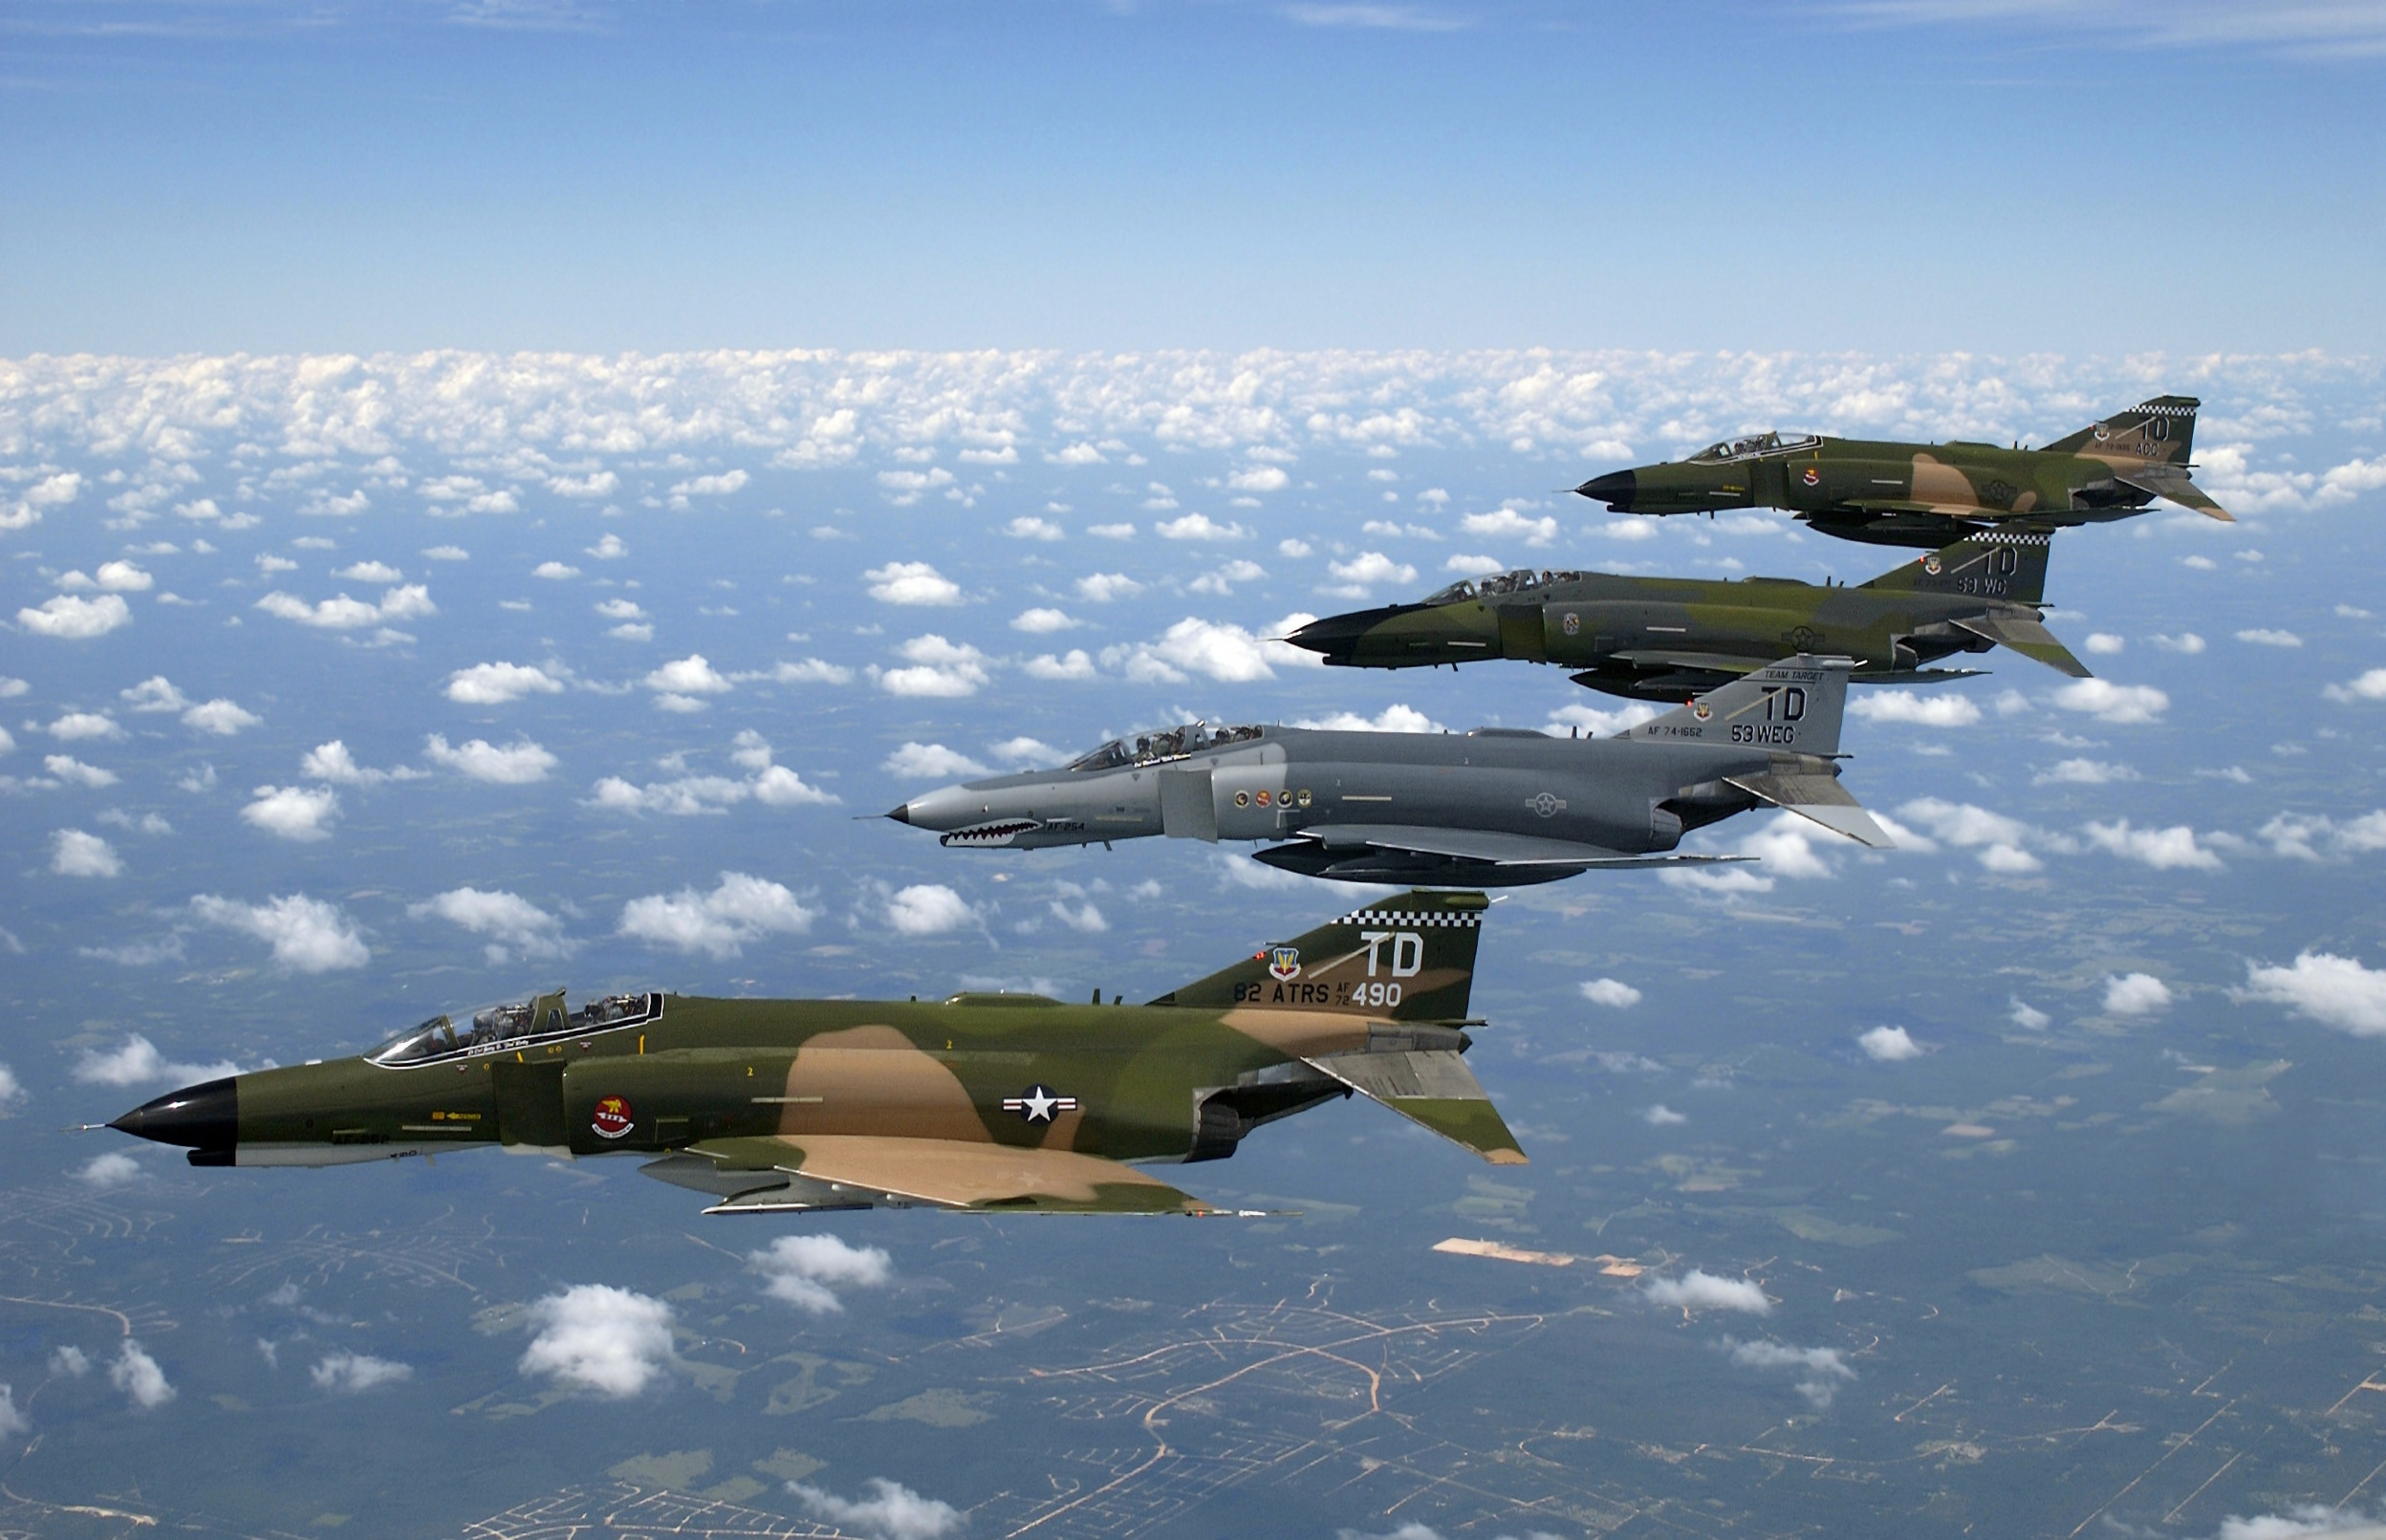 1997_F-4_Heritage_Flight_over_Florida-edit_1.jpg